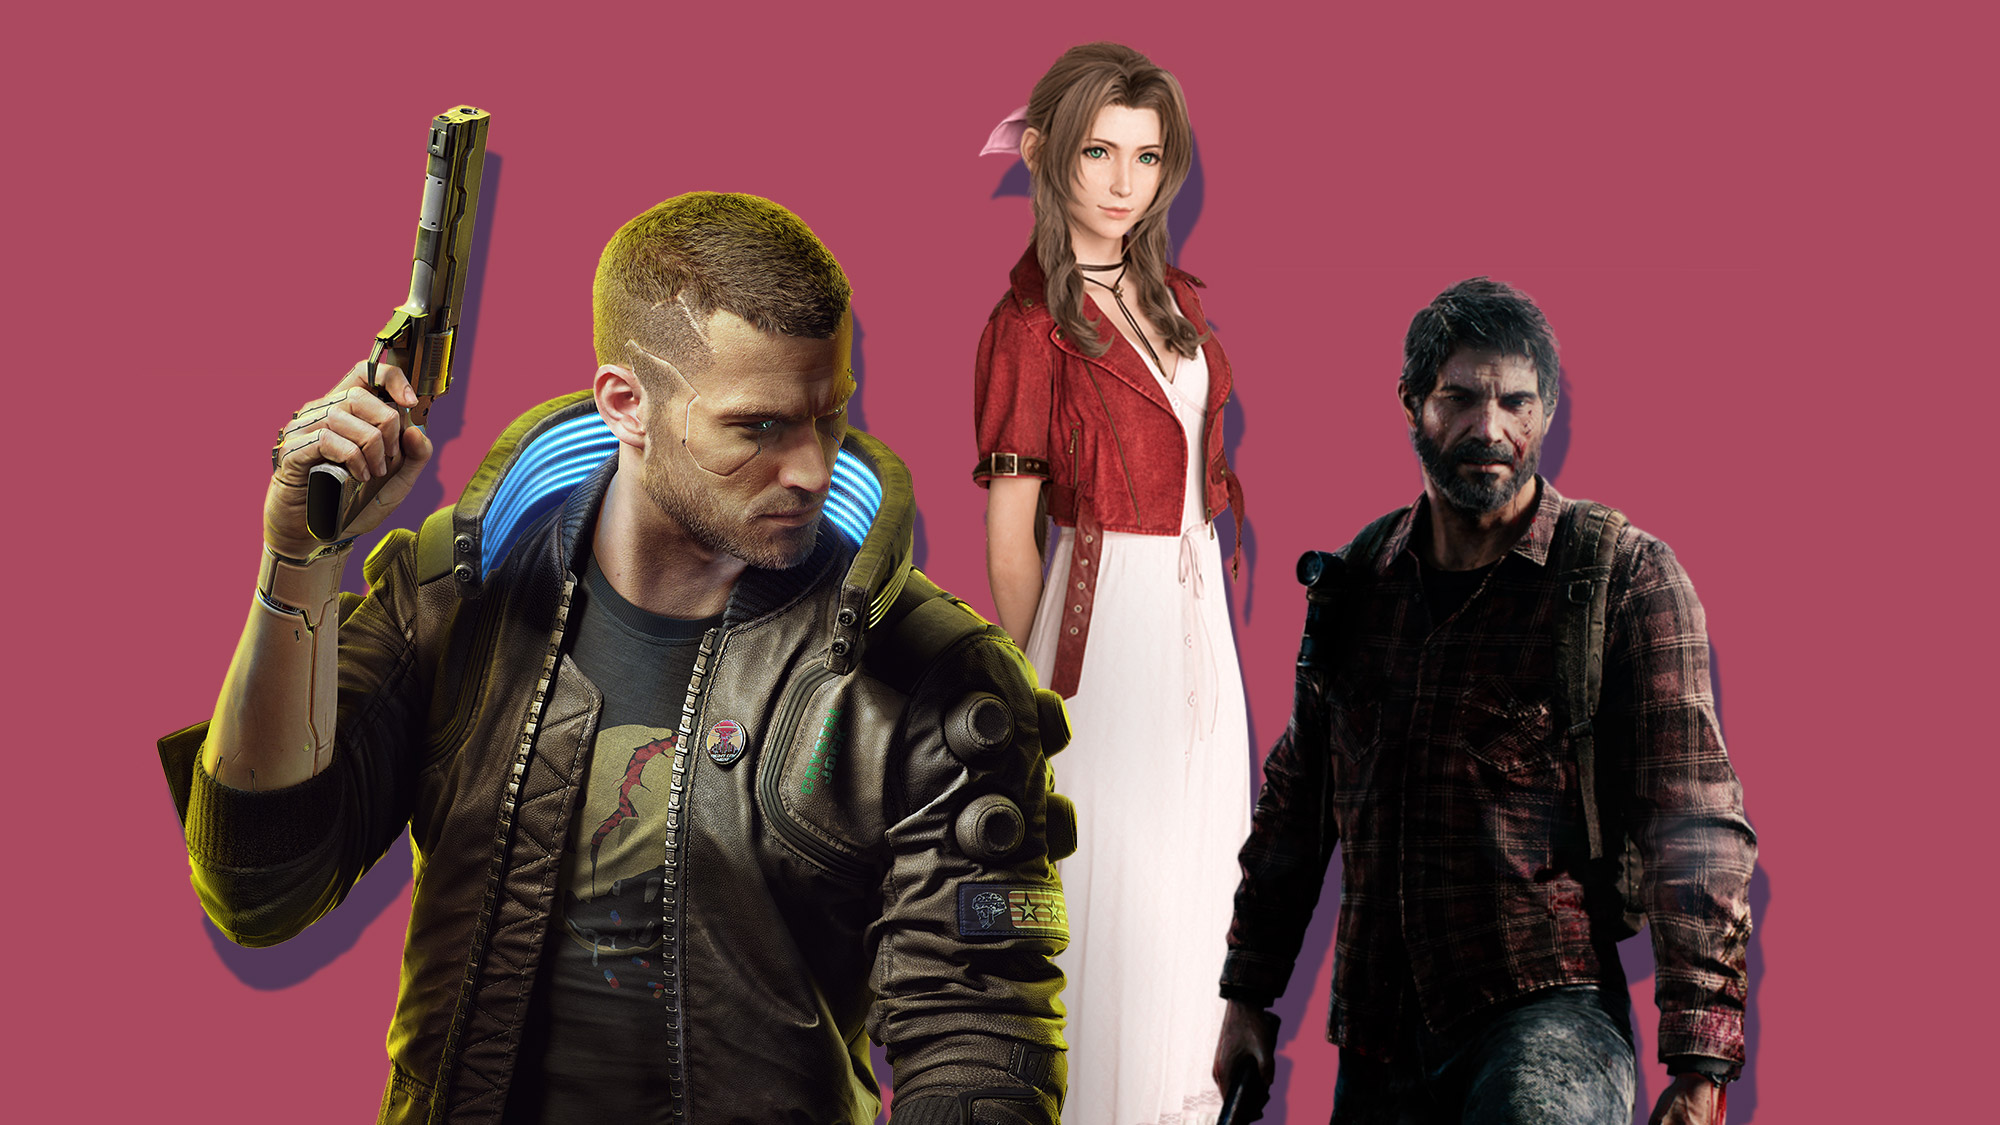 Top 25 Upcoming pc games of 2019-2020 and coming soon | Metal gear ...